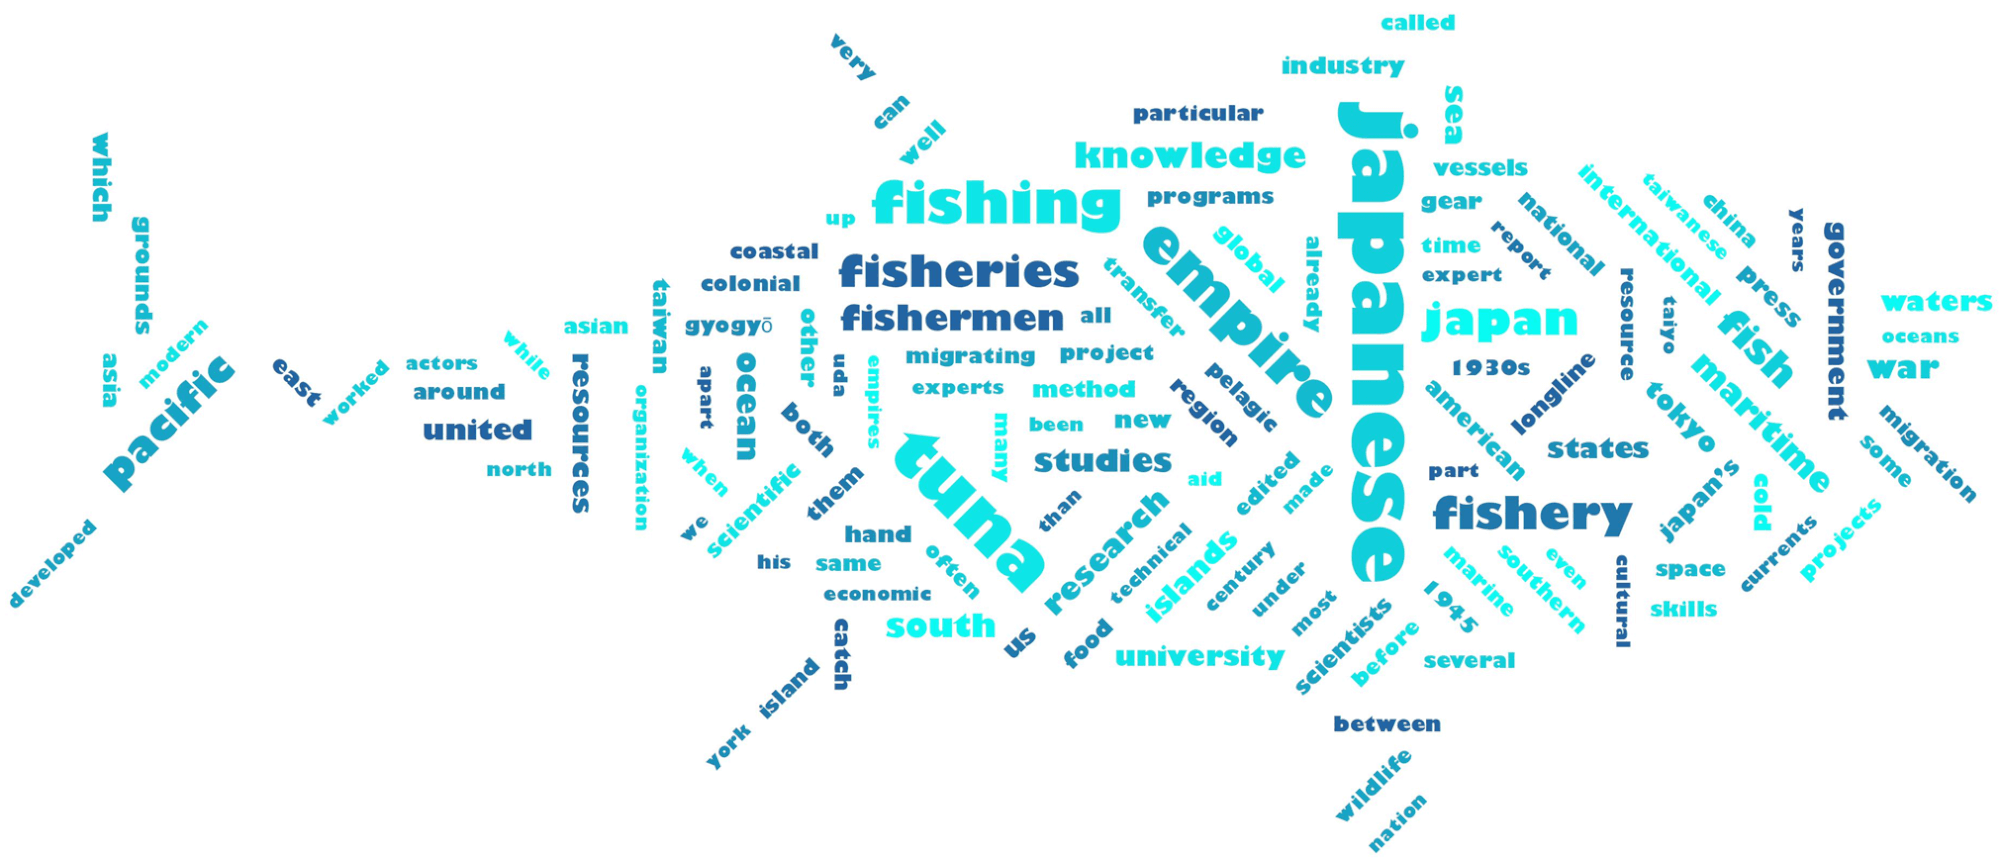 Example of a custom-selected image as a word cloud contour